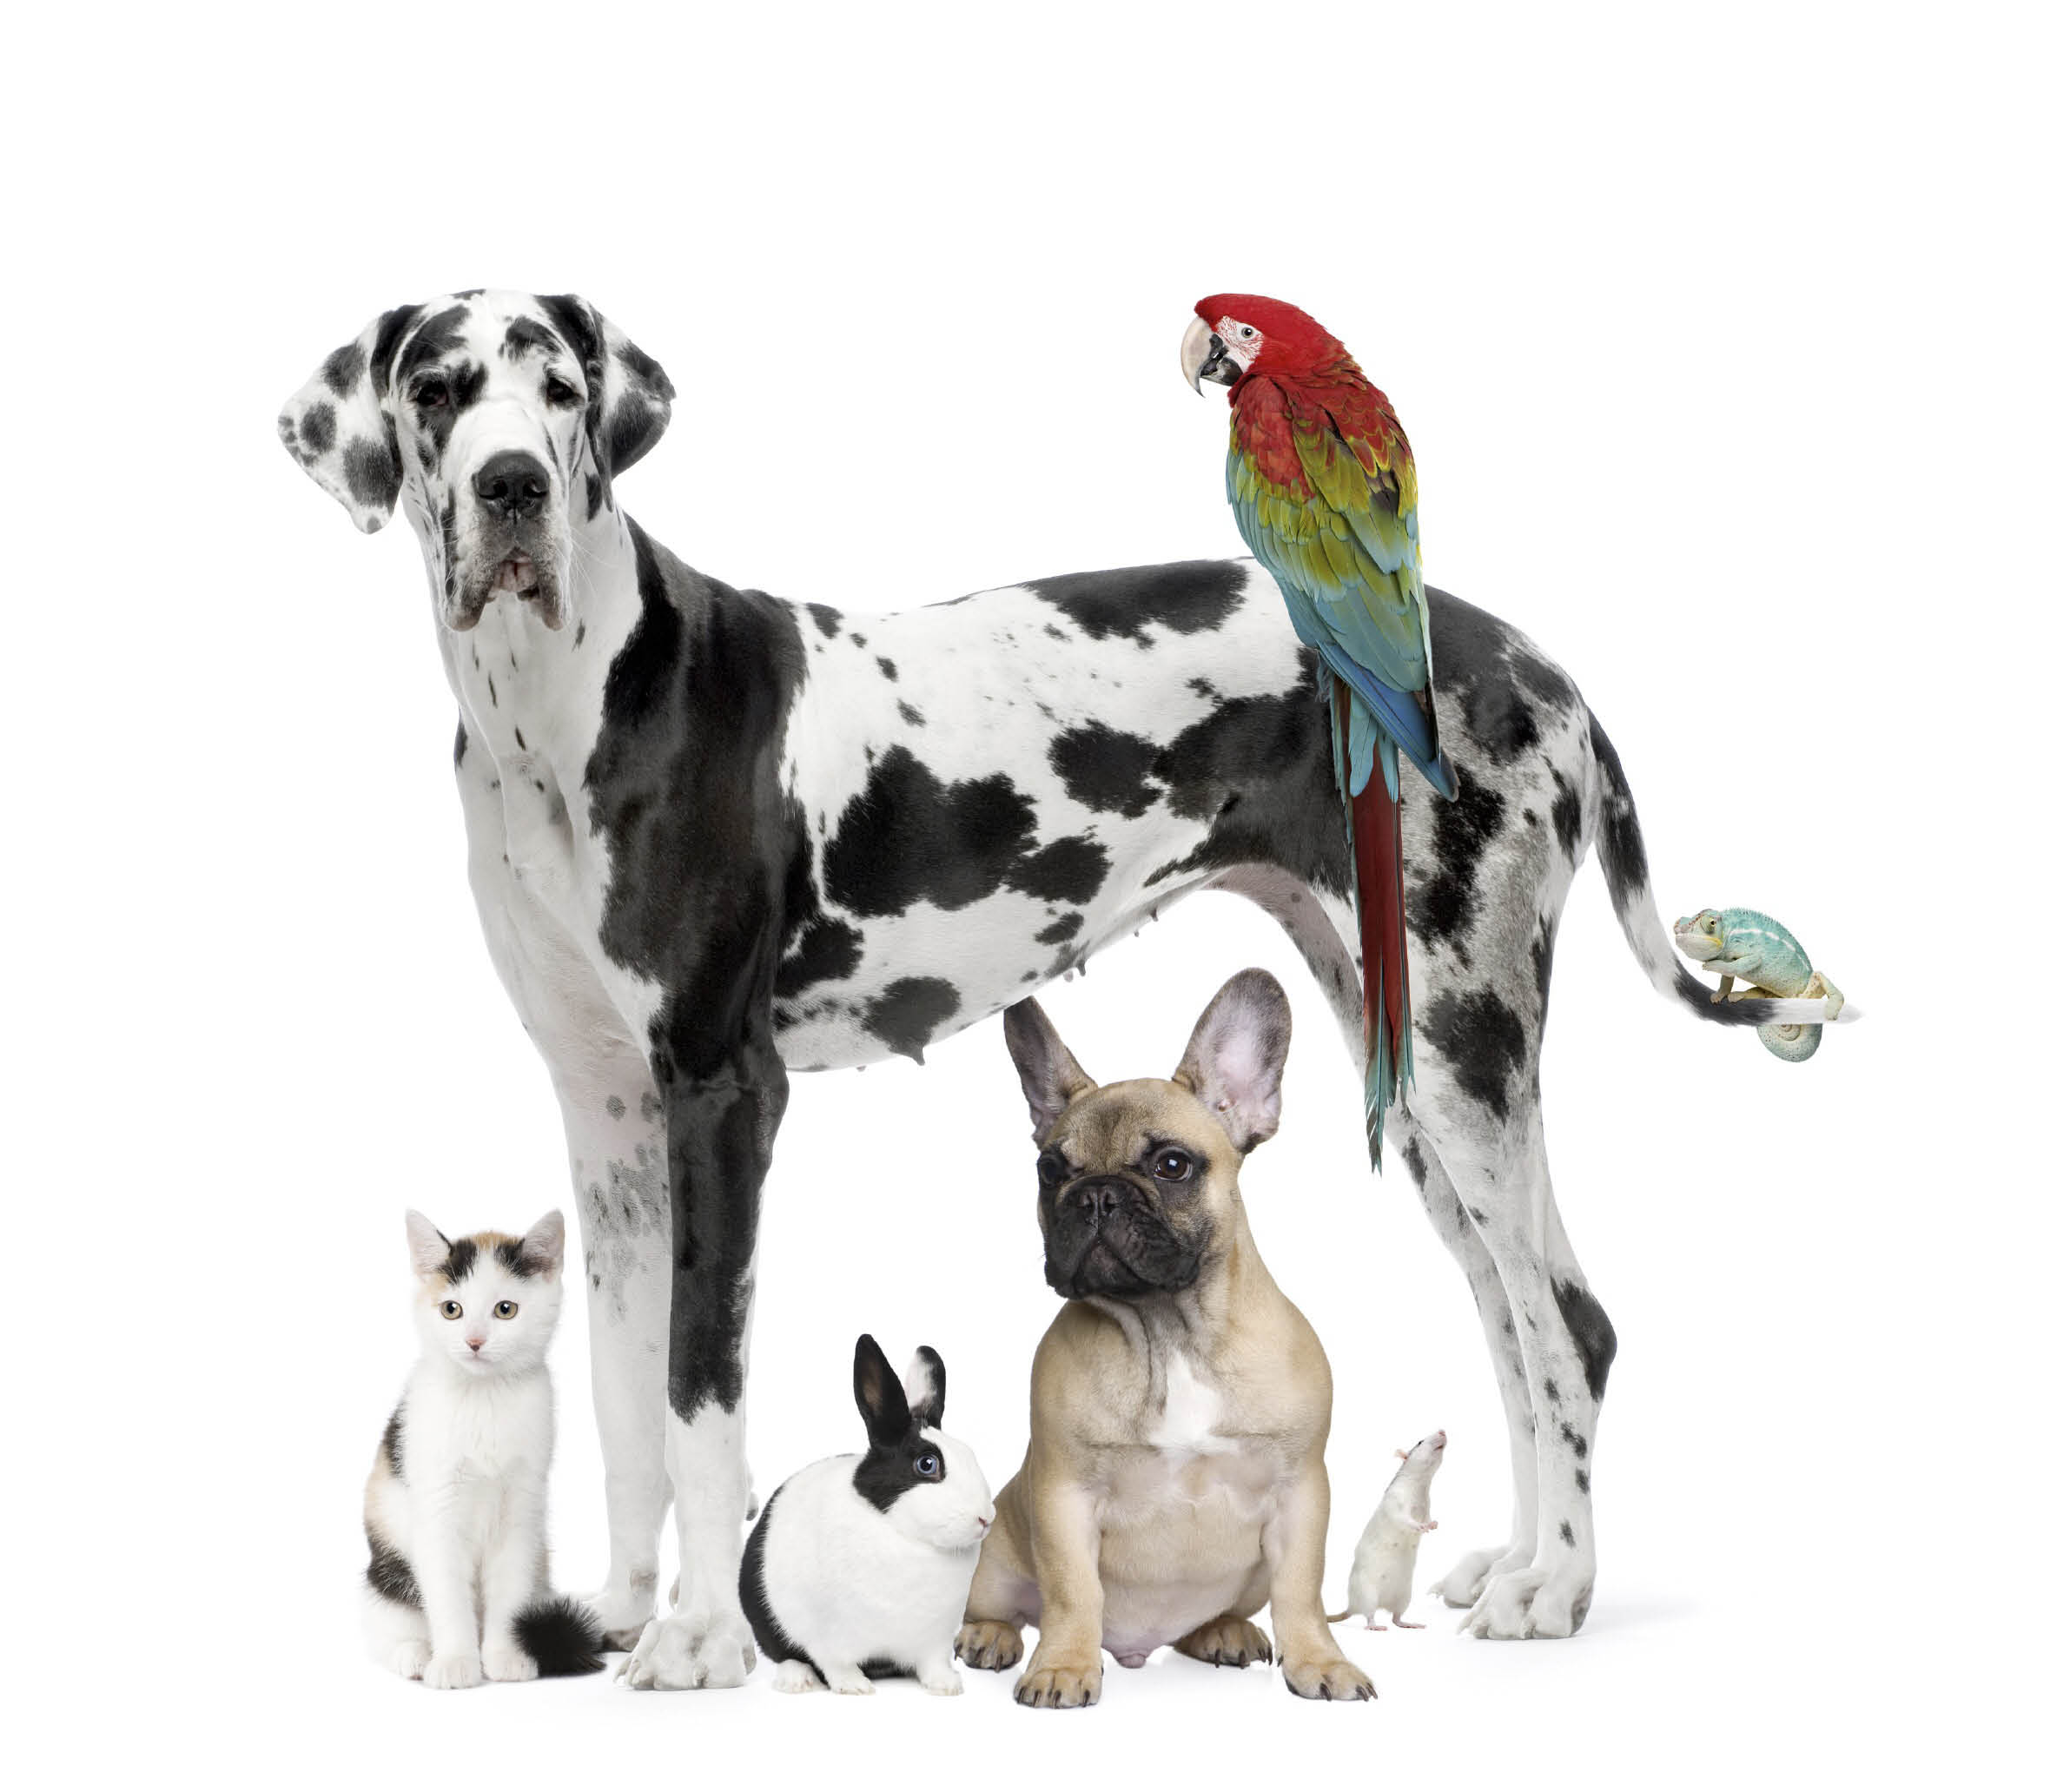 Academy Pet Hospital Albuquerque veterinarian